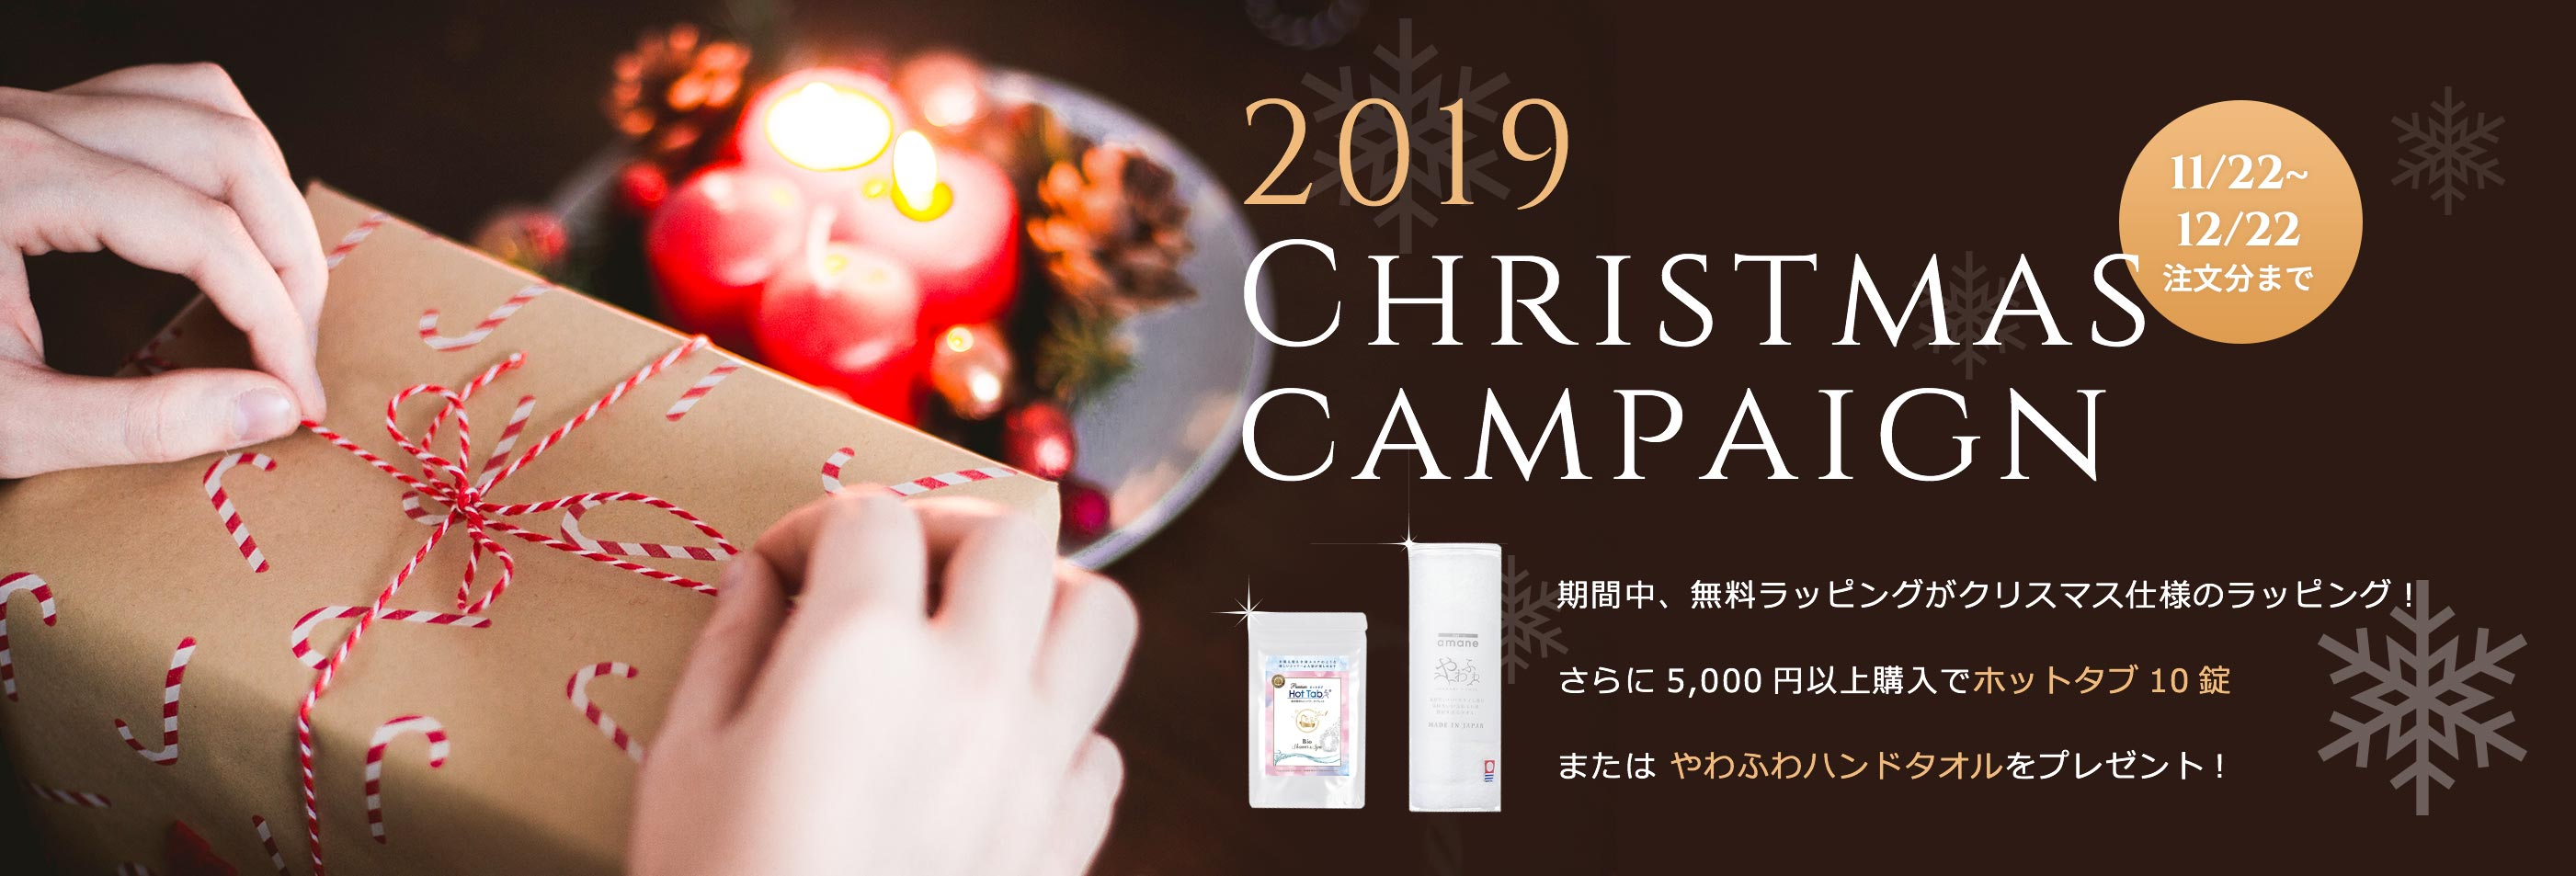 2019Christmascampaign